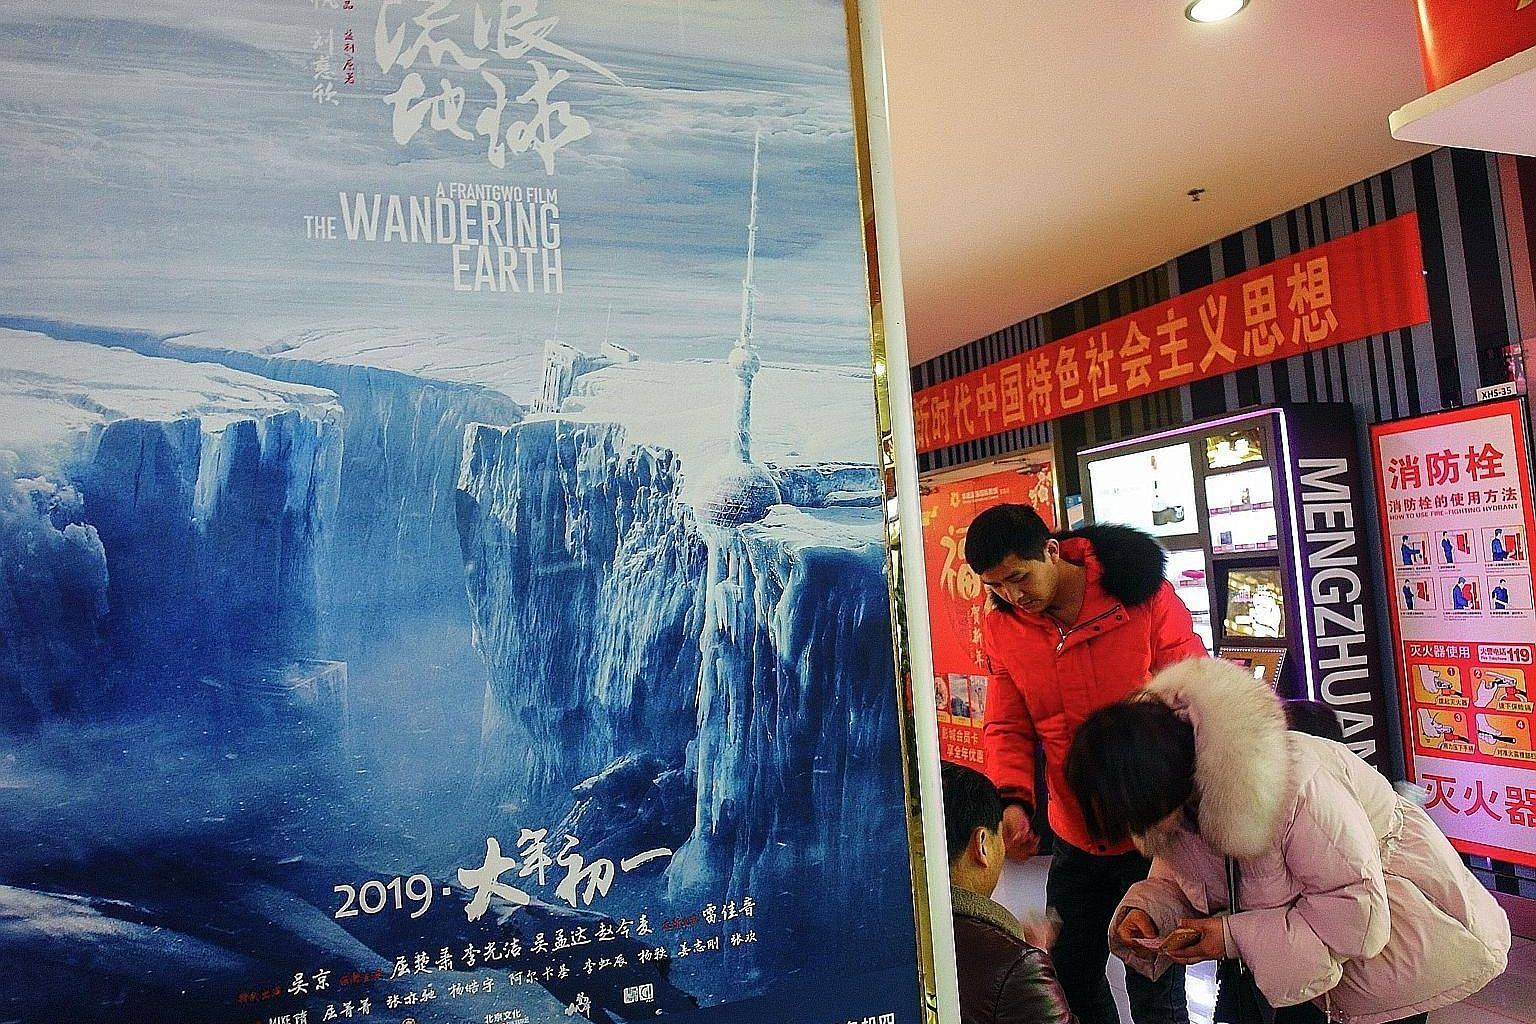 The Wandering Earth's box-office takings hit 3.7 billion yuan (S$745 million) within a fortnight, making the film China's second-highest grossing to date.